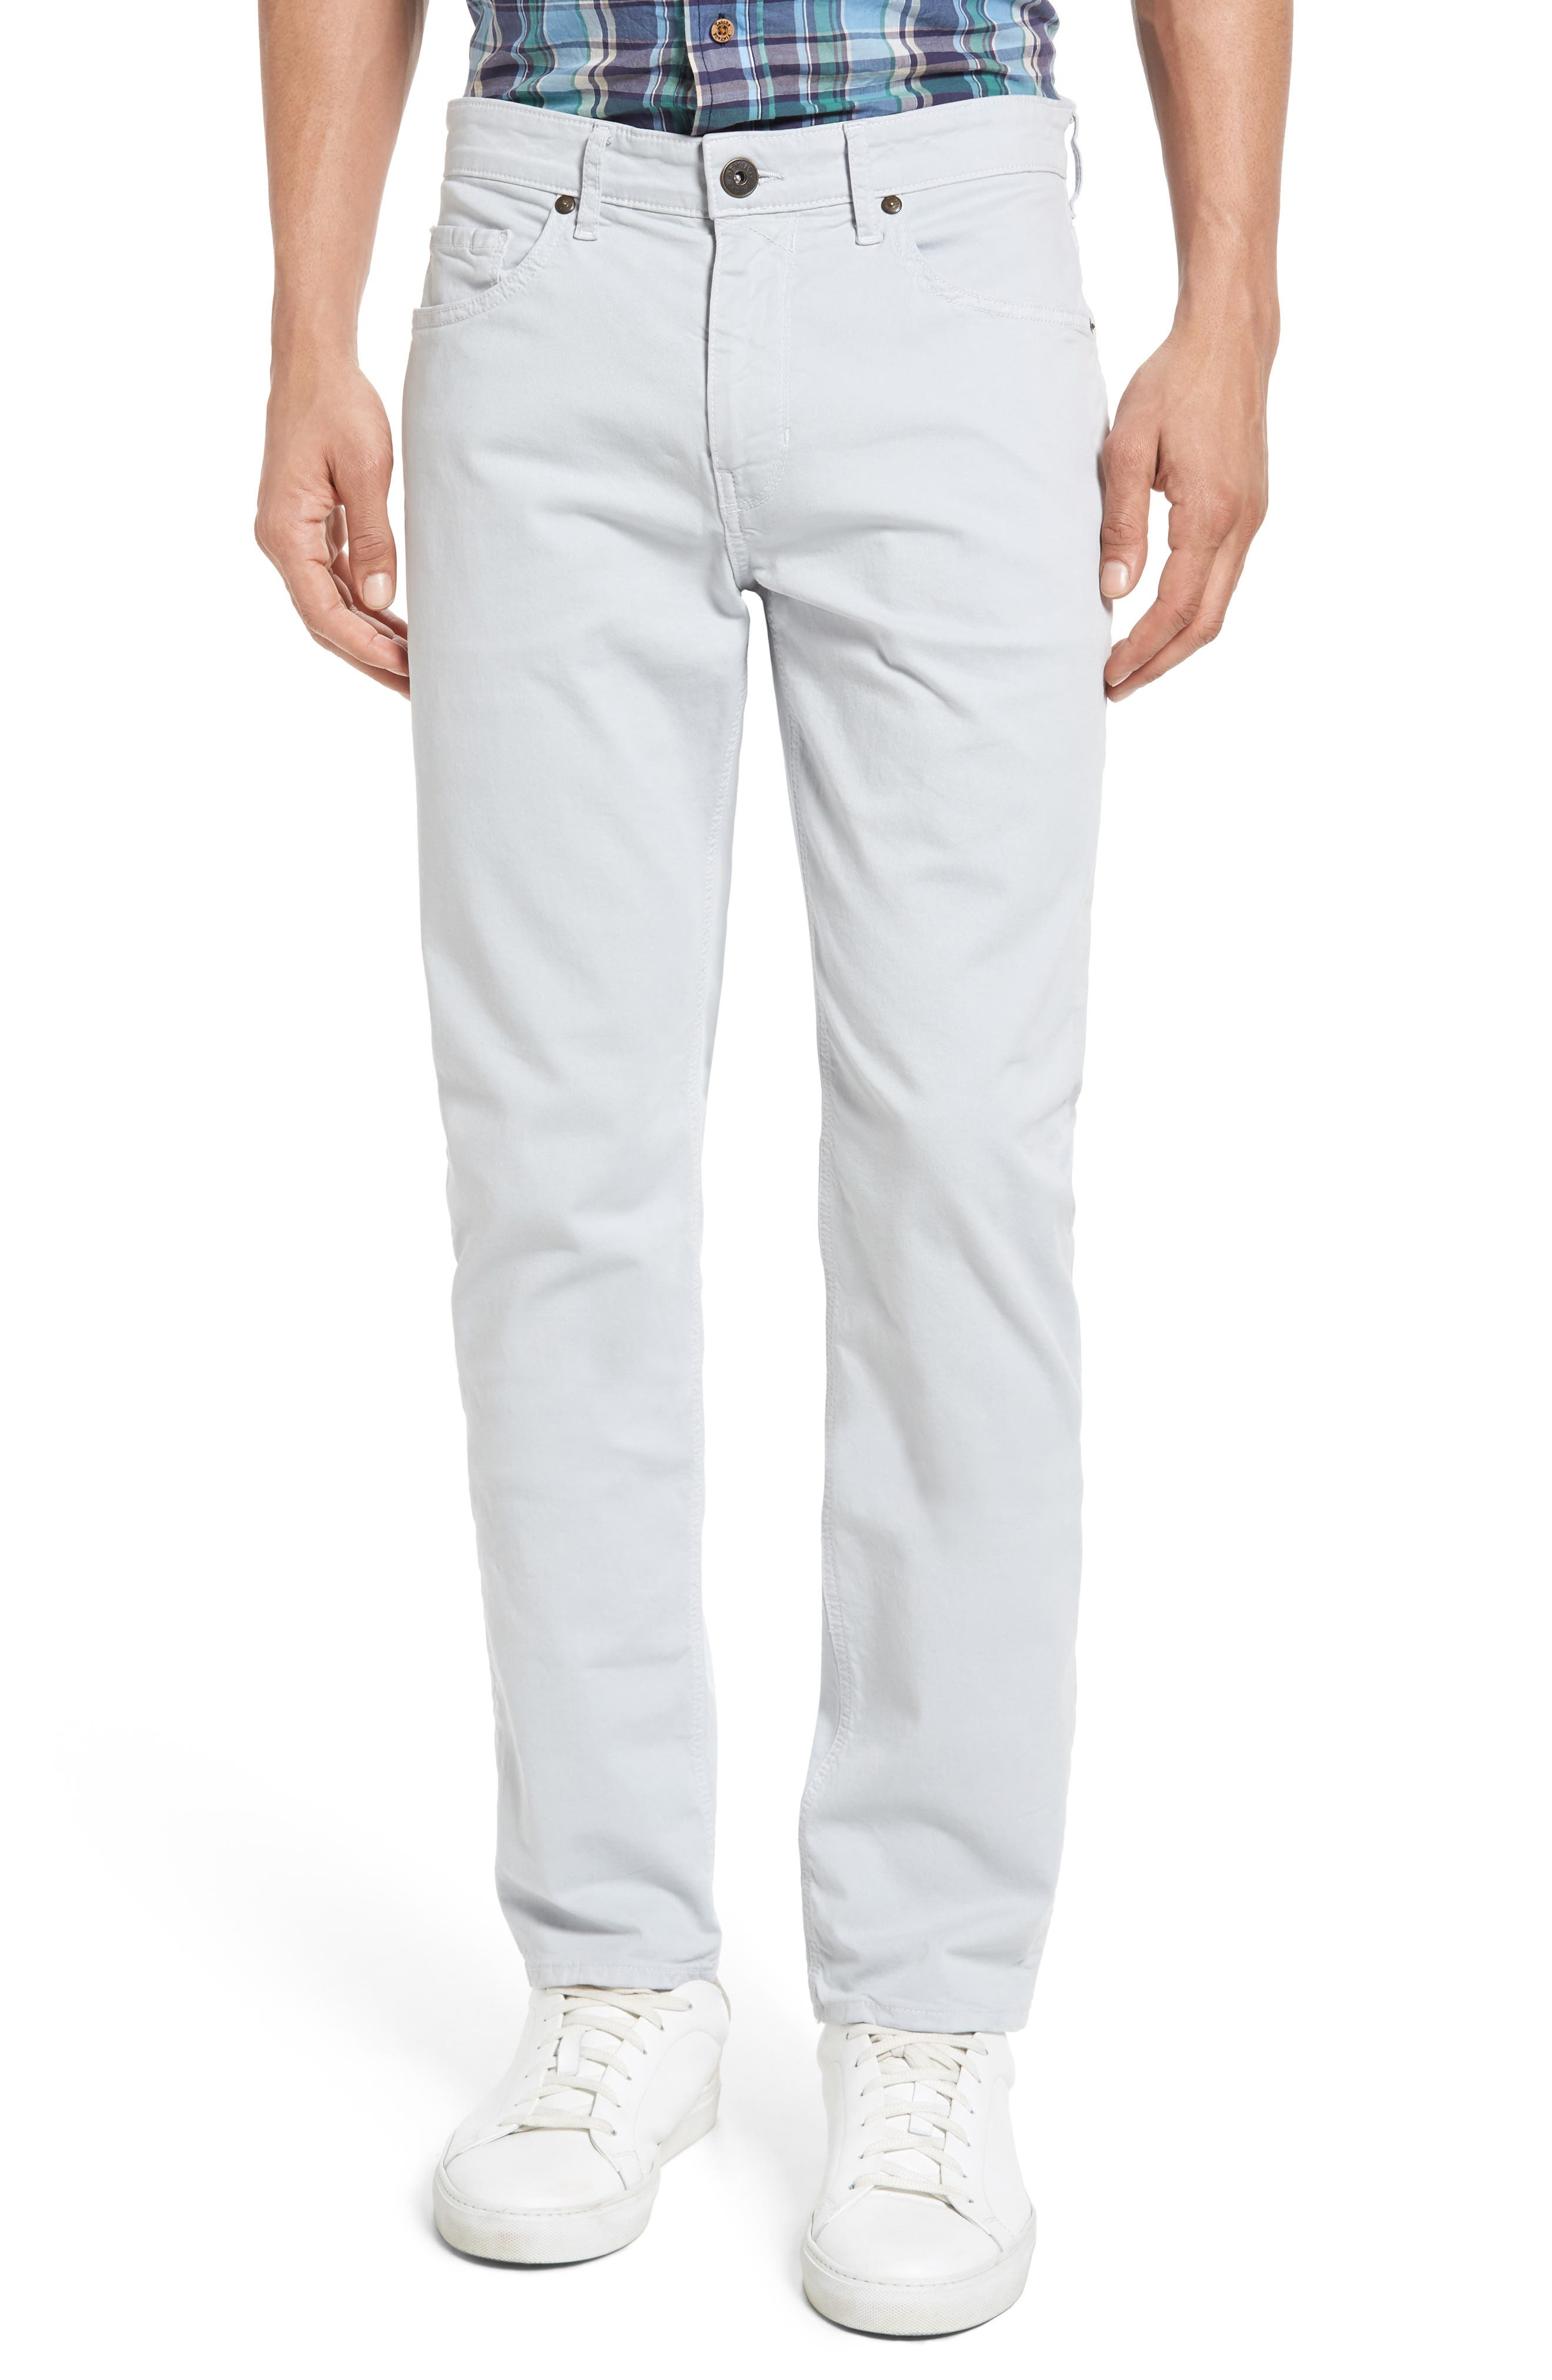 Lennox Skinny Fit Jeans,                             Main thumbnail 1, color,                             Blue Spring